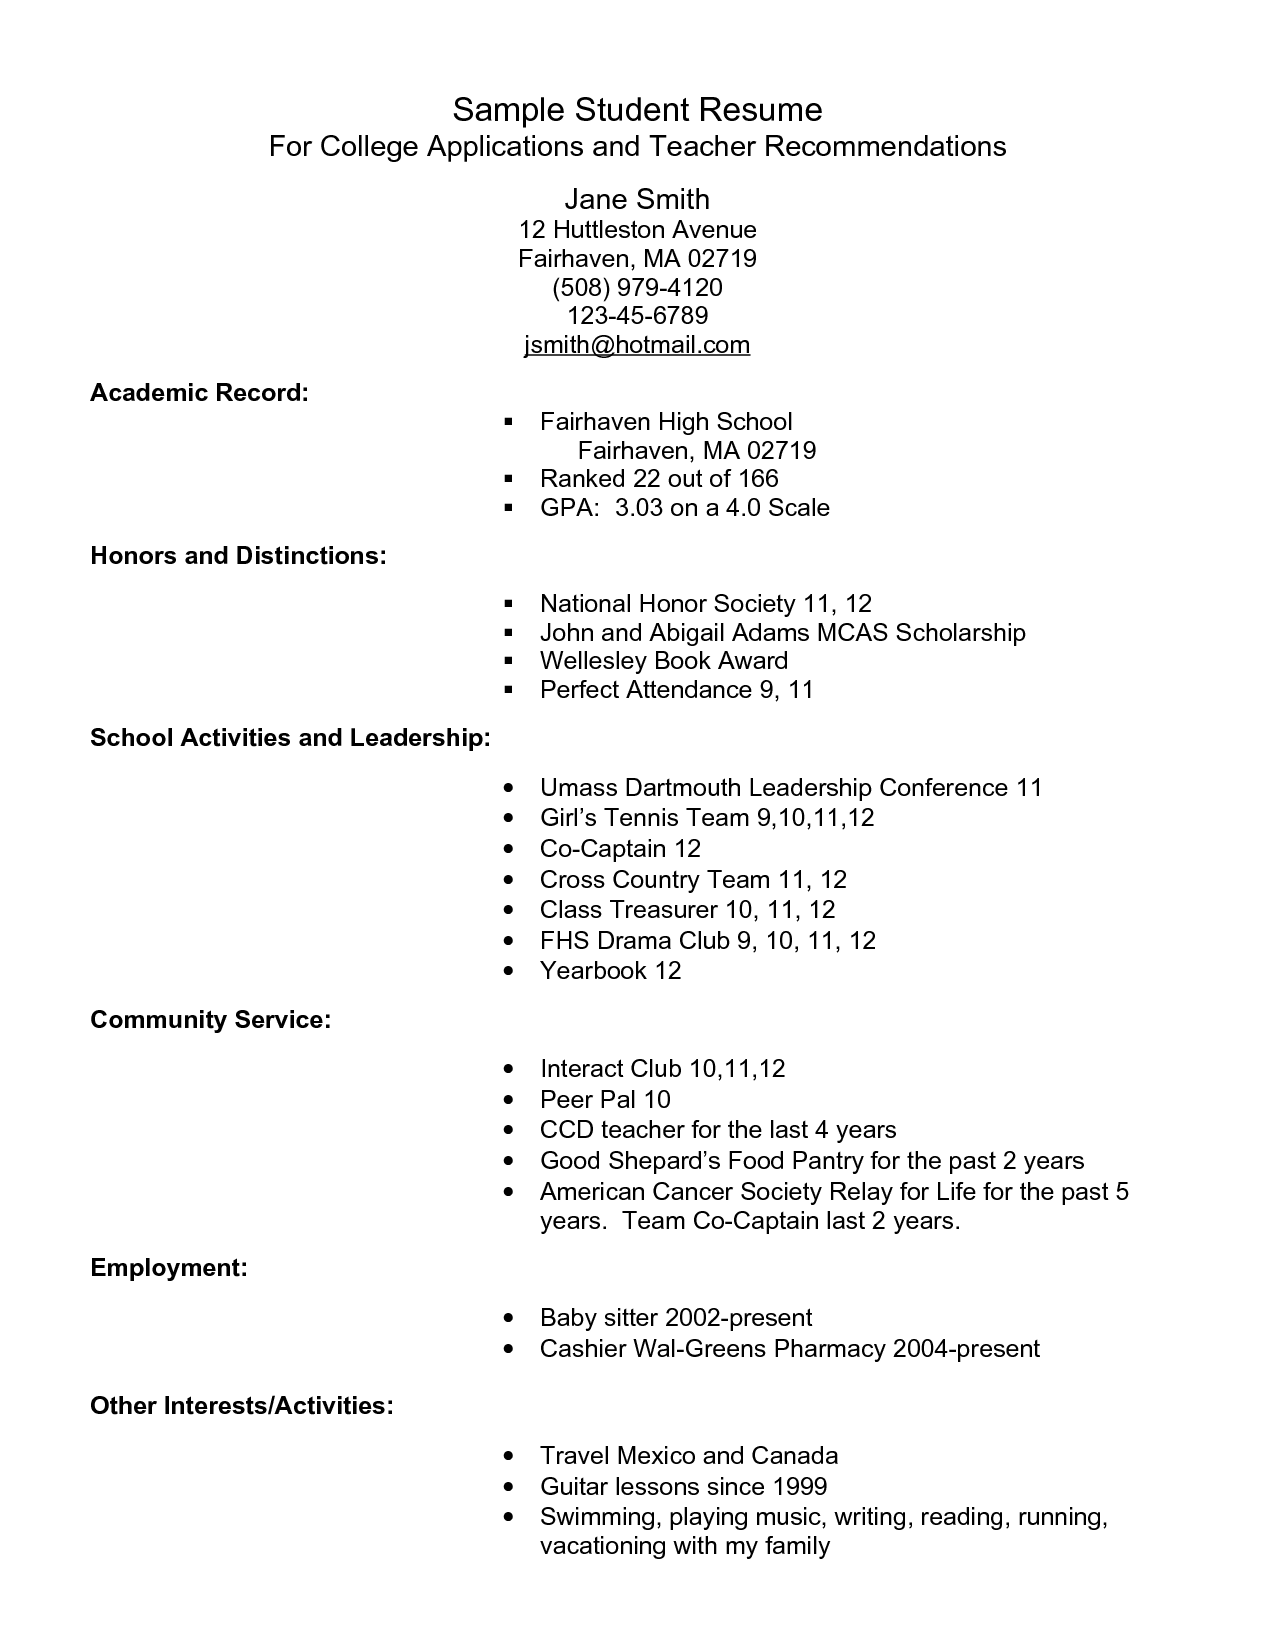 example resume for high school students for college applications Sample  Student Resume - PDF by smapdi59